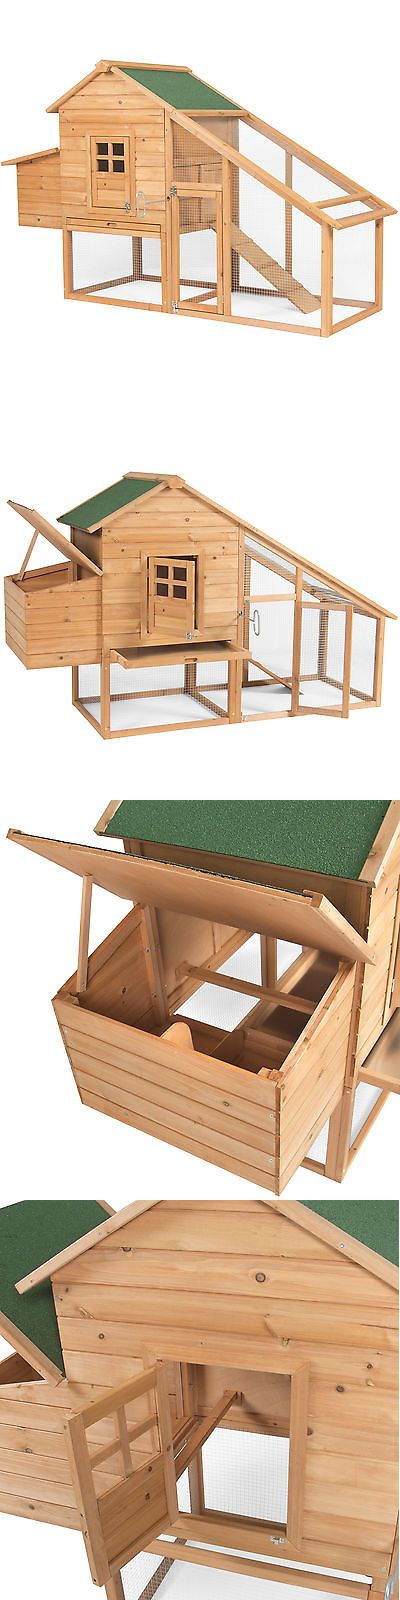 Backyard Poultry Supplies 177801: Bcp 75 Wooden Chicken Coop Backyard Nest Box Wood Hen House Poultry Cage Hutch BUY IT NOW ONLY: $159.95